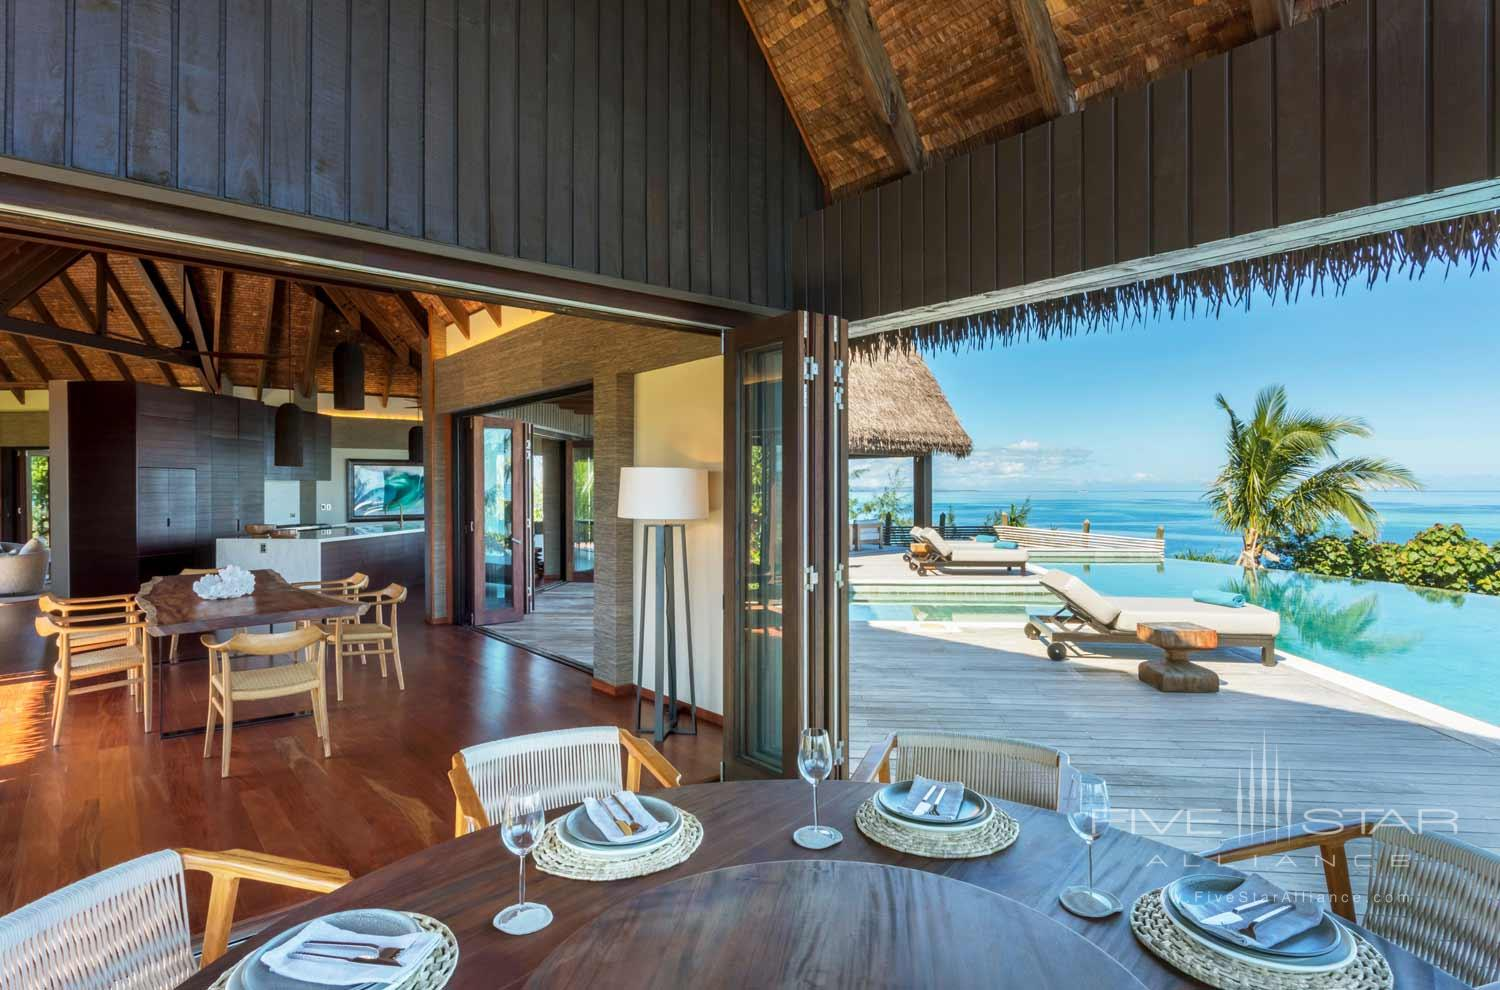 Ocean View Residence at Six Senses Fiji, MALOLO ISLAND, FIJI ISLANDS